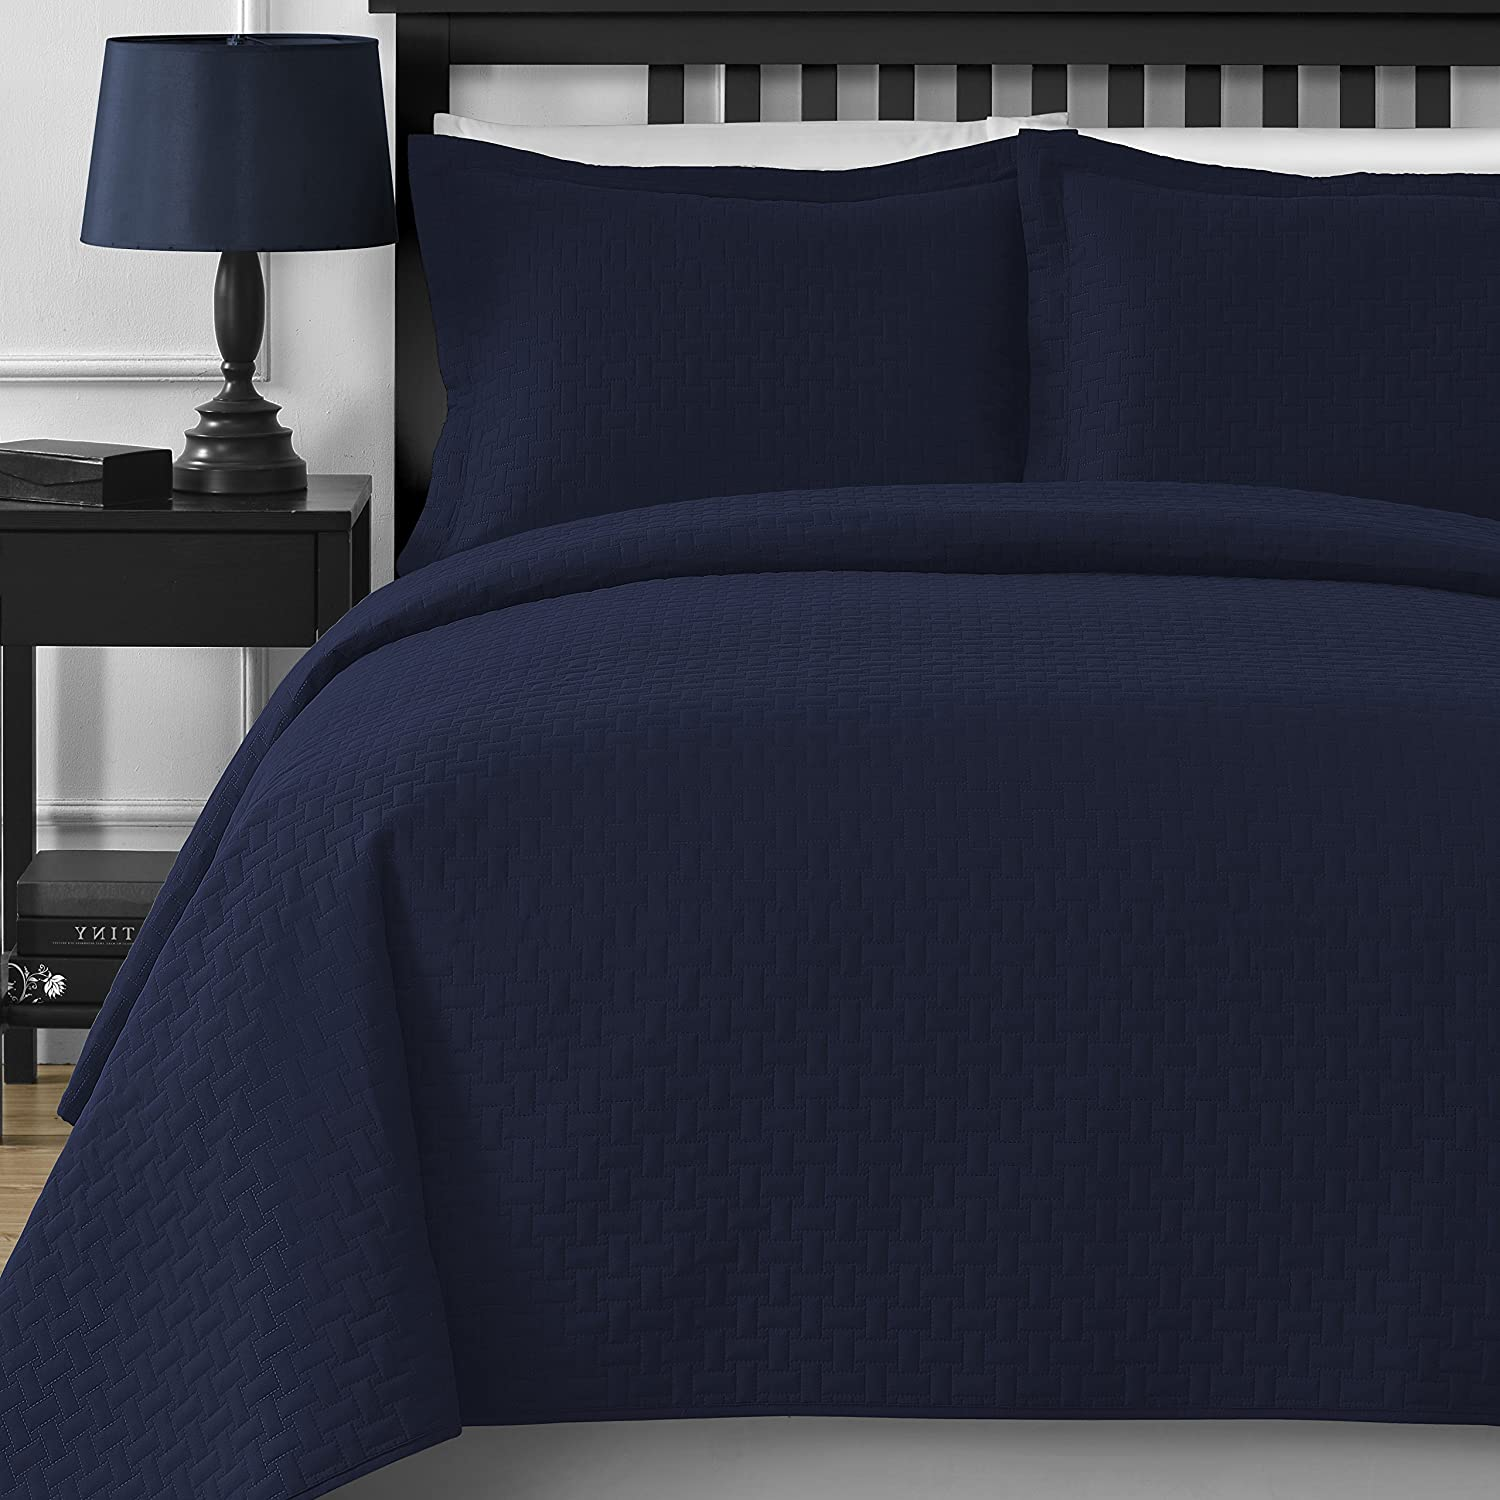 Comfy Bedding Frame 3-piece Bedspread Coverlet Set (King/Cal King, Navy Blue